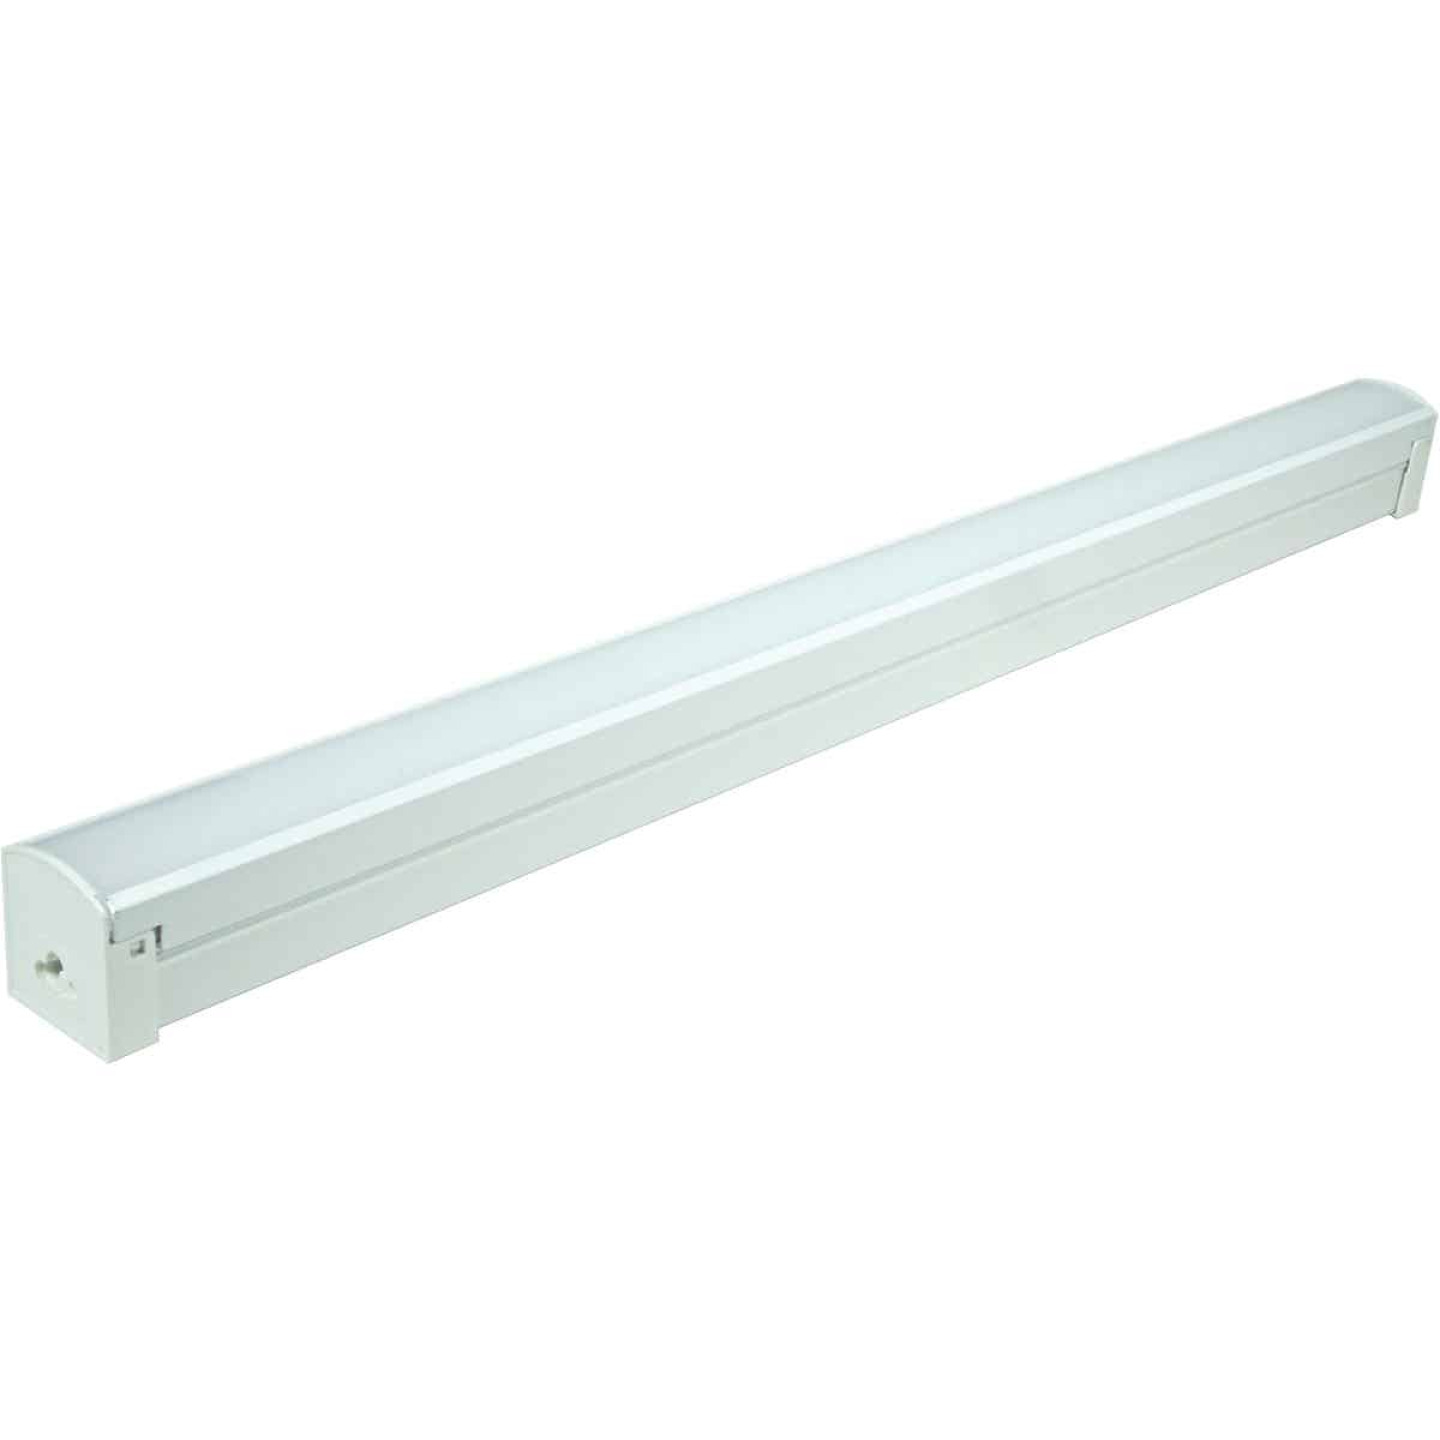 Satco Nuvo 2 Ft. LED Linkable Strip Light Fixture Image 1